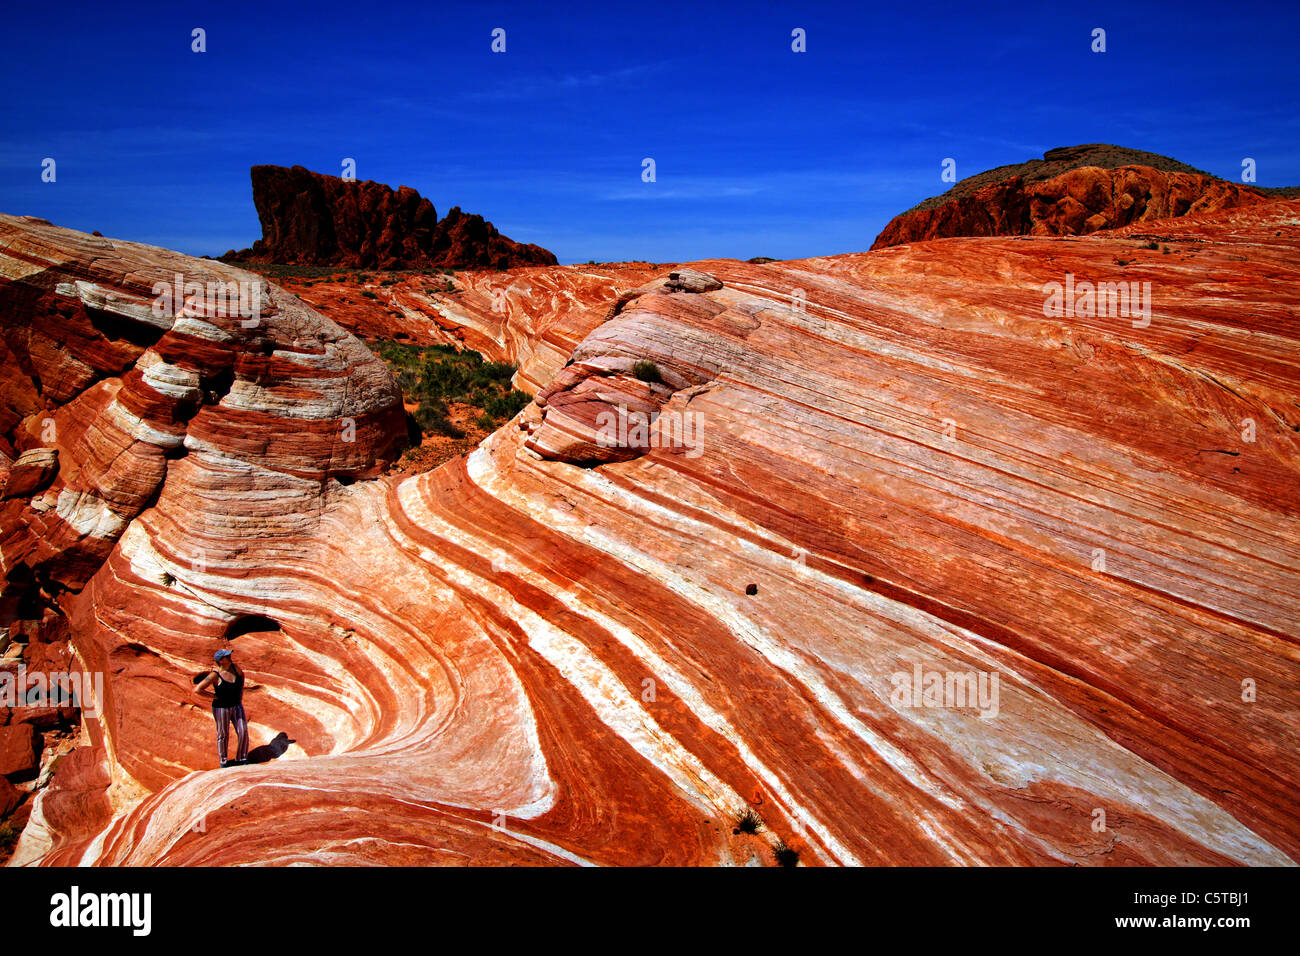 Hiker in Valley of Fire, Nevada, USA - Stock Image